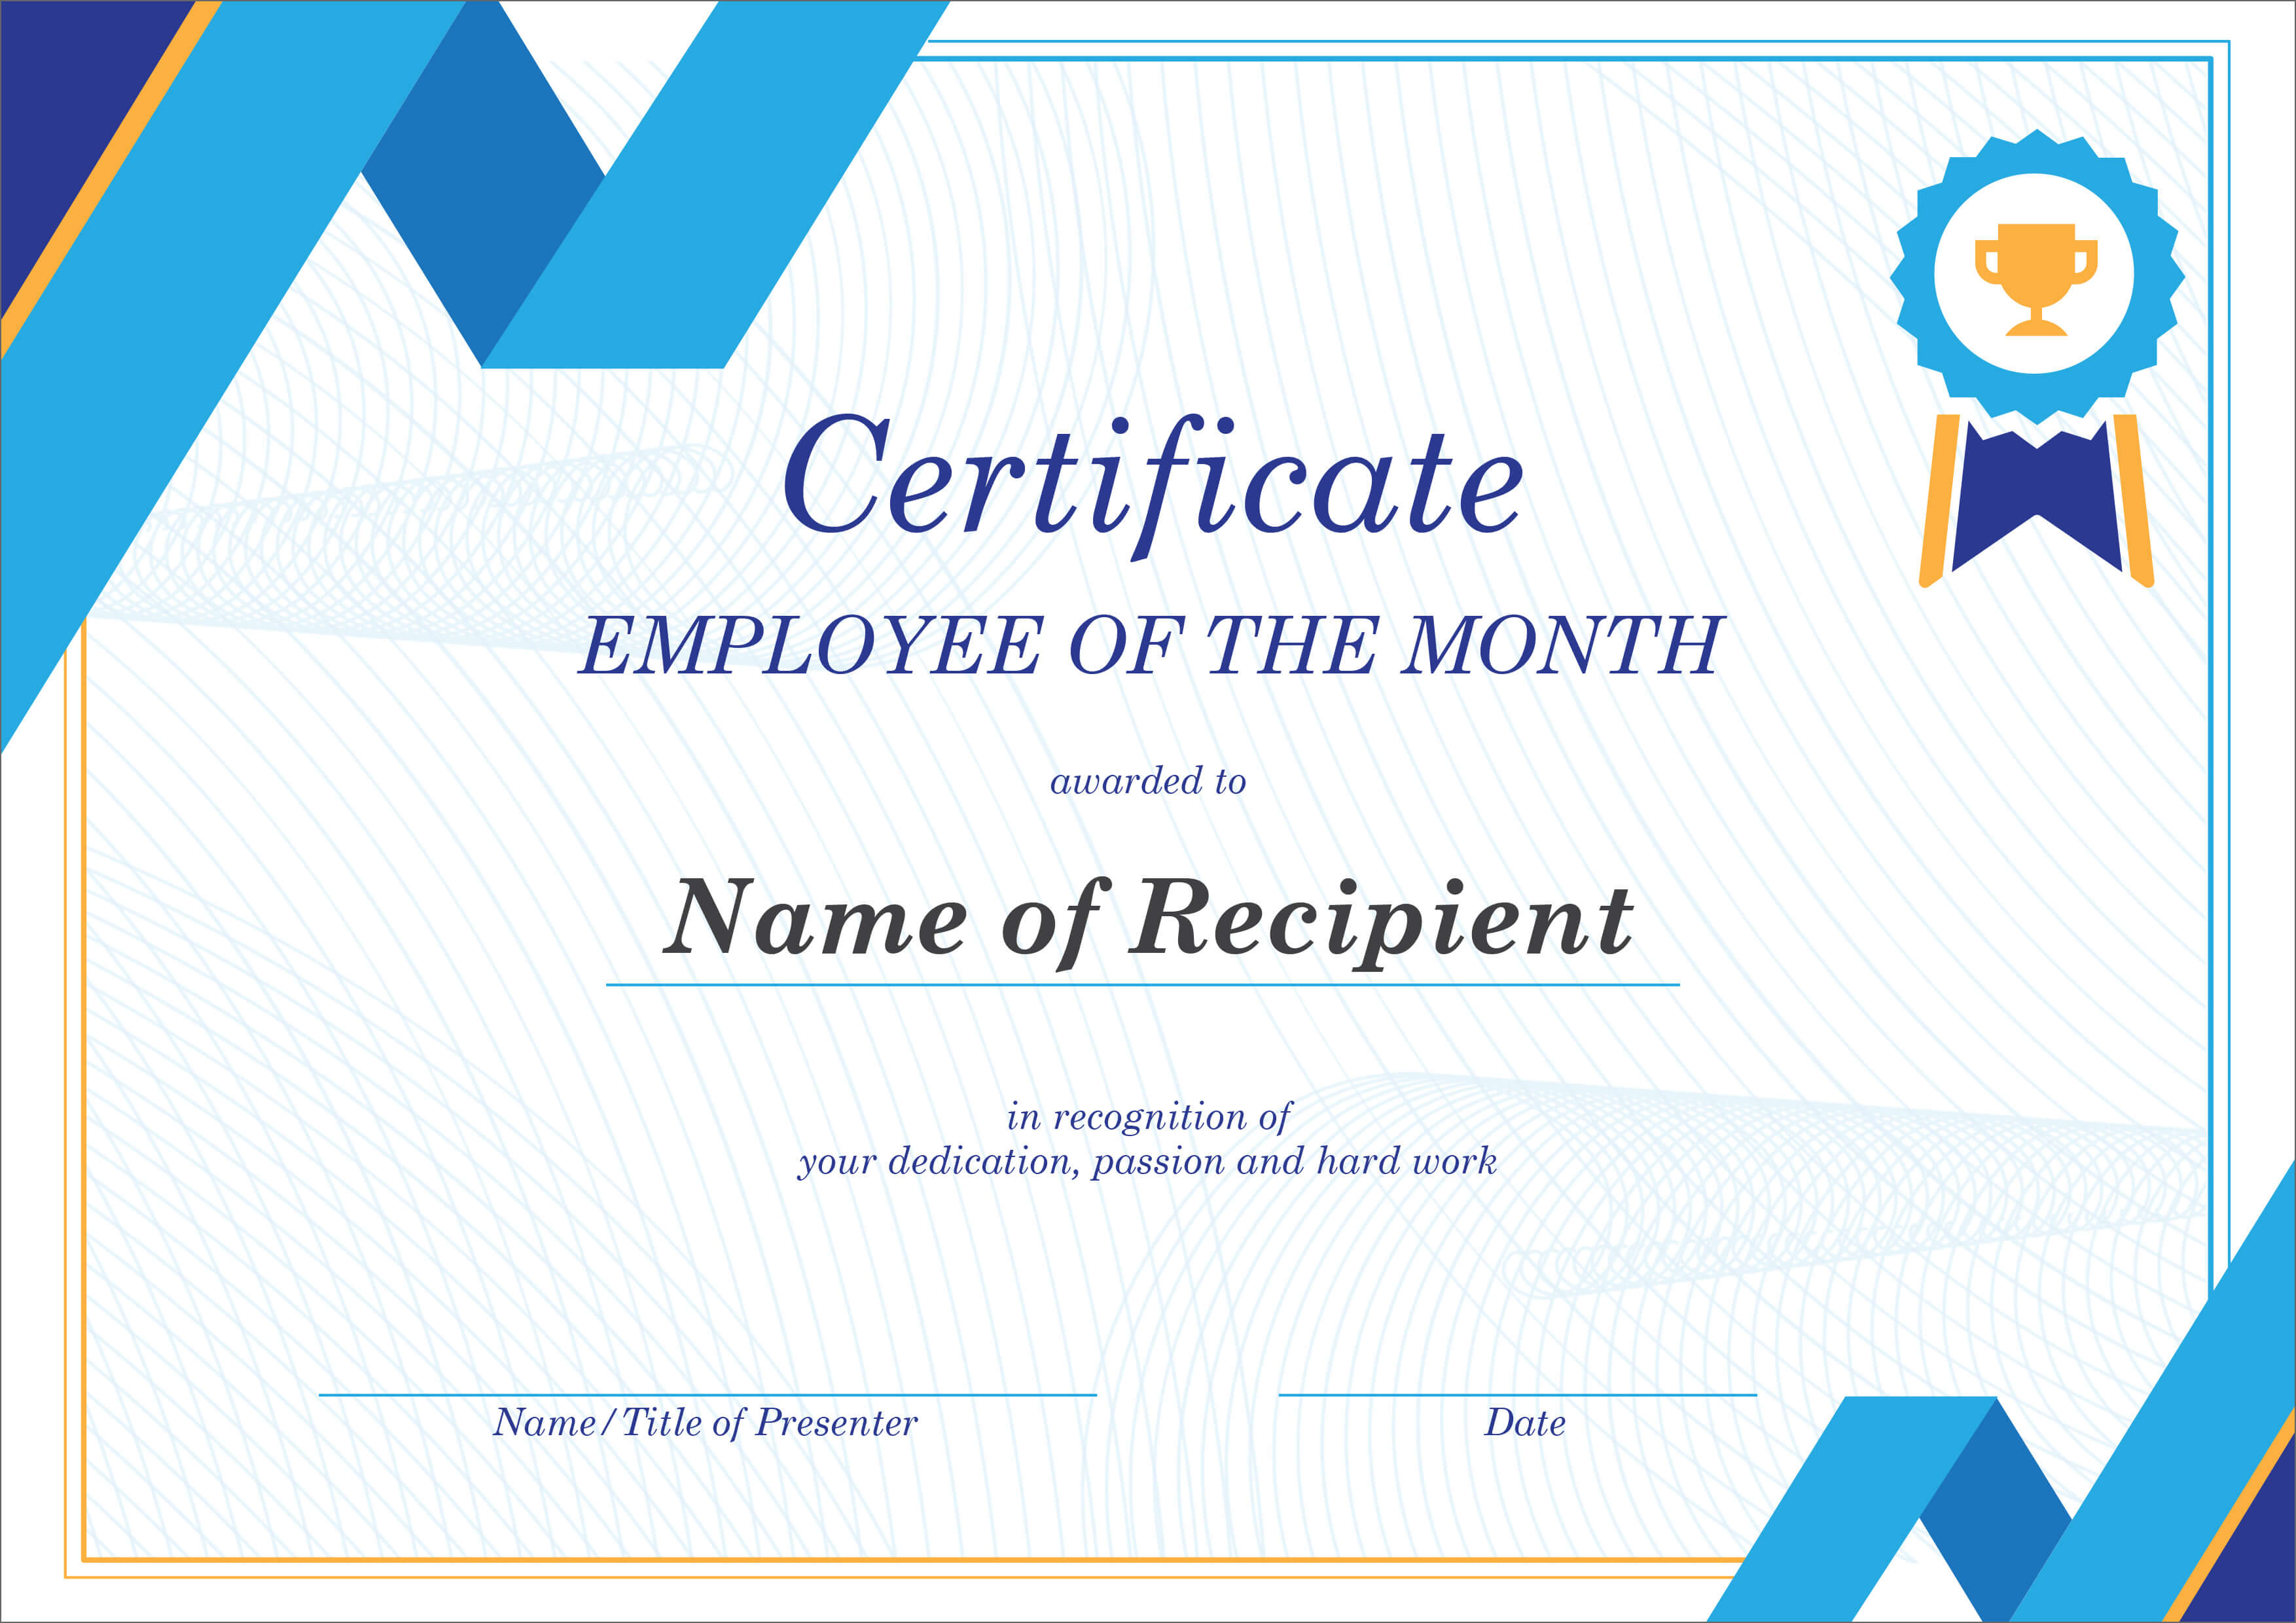 50 Creative Blank Certificate Templates In Psd Photoshop for Manager Of The Month Certificate Template